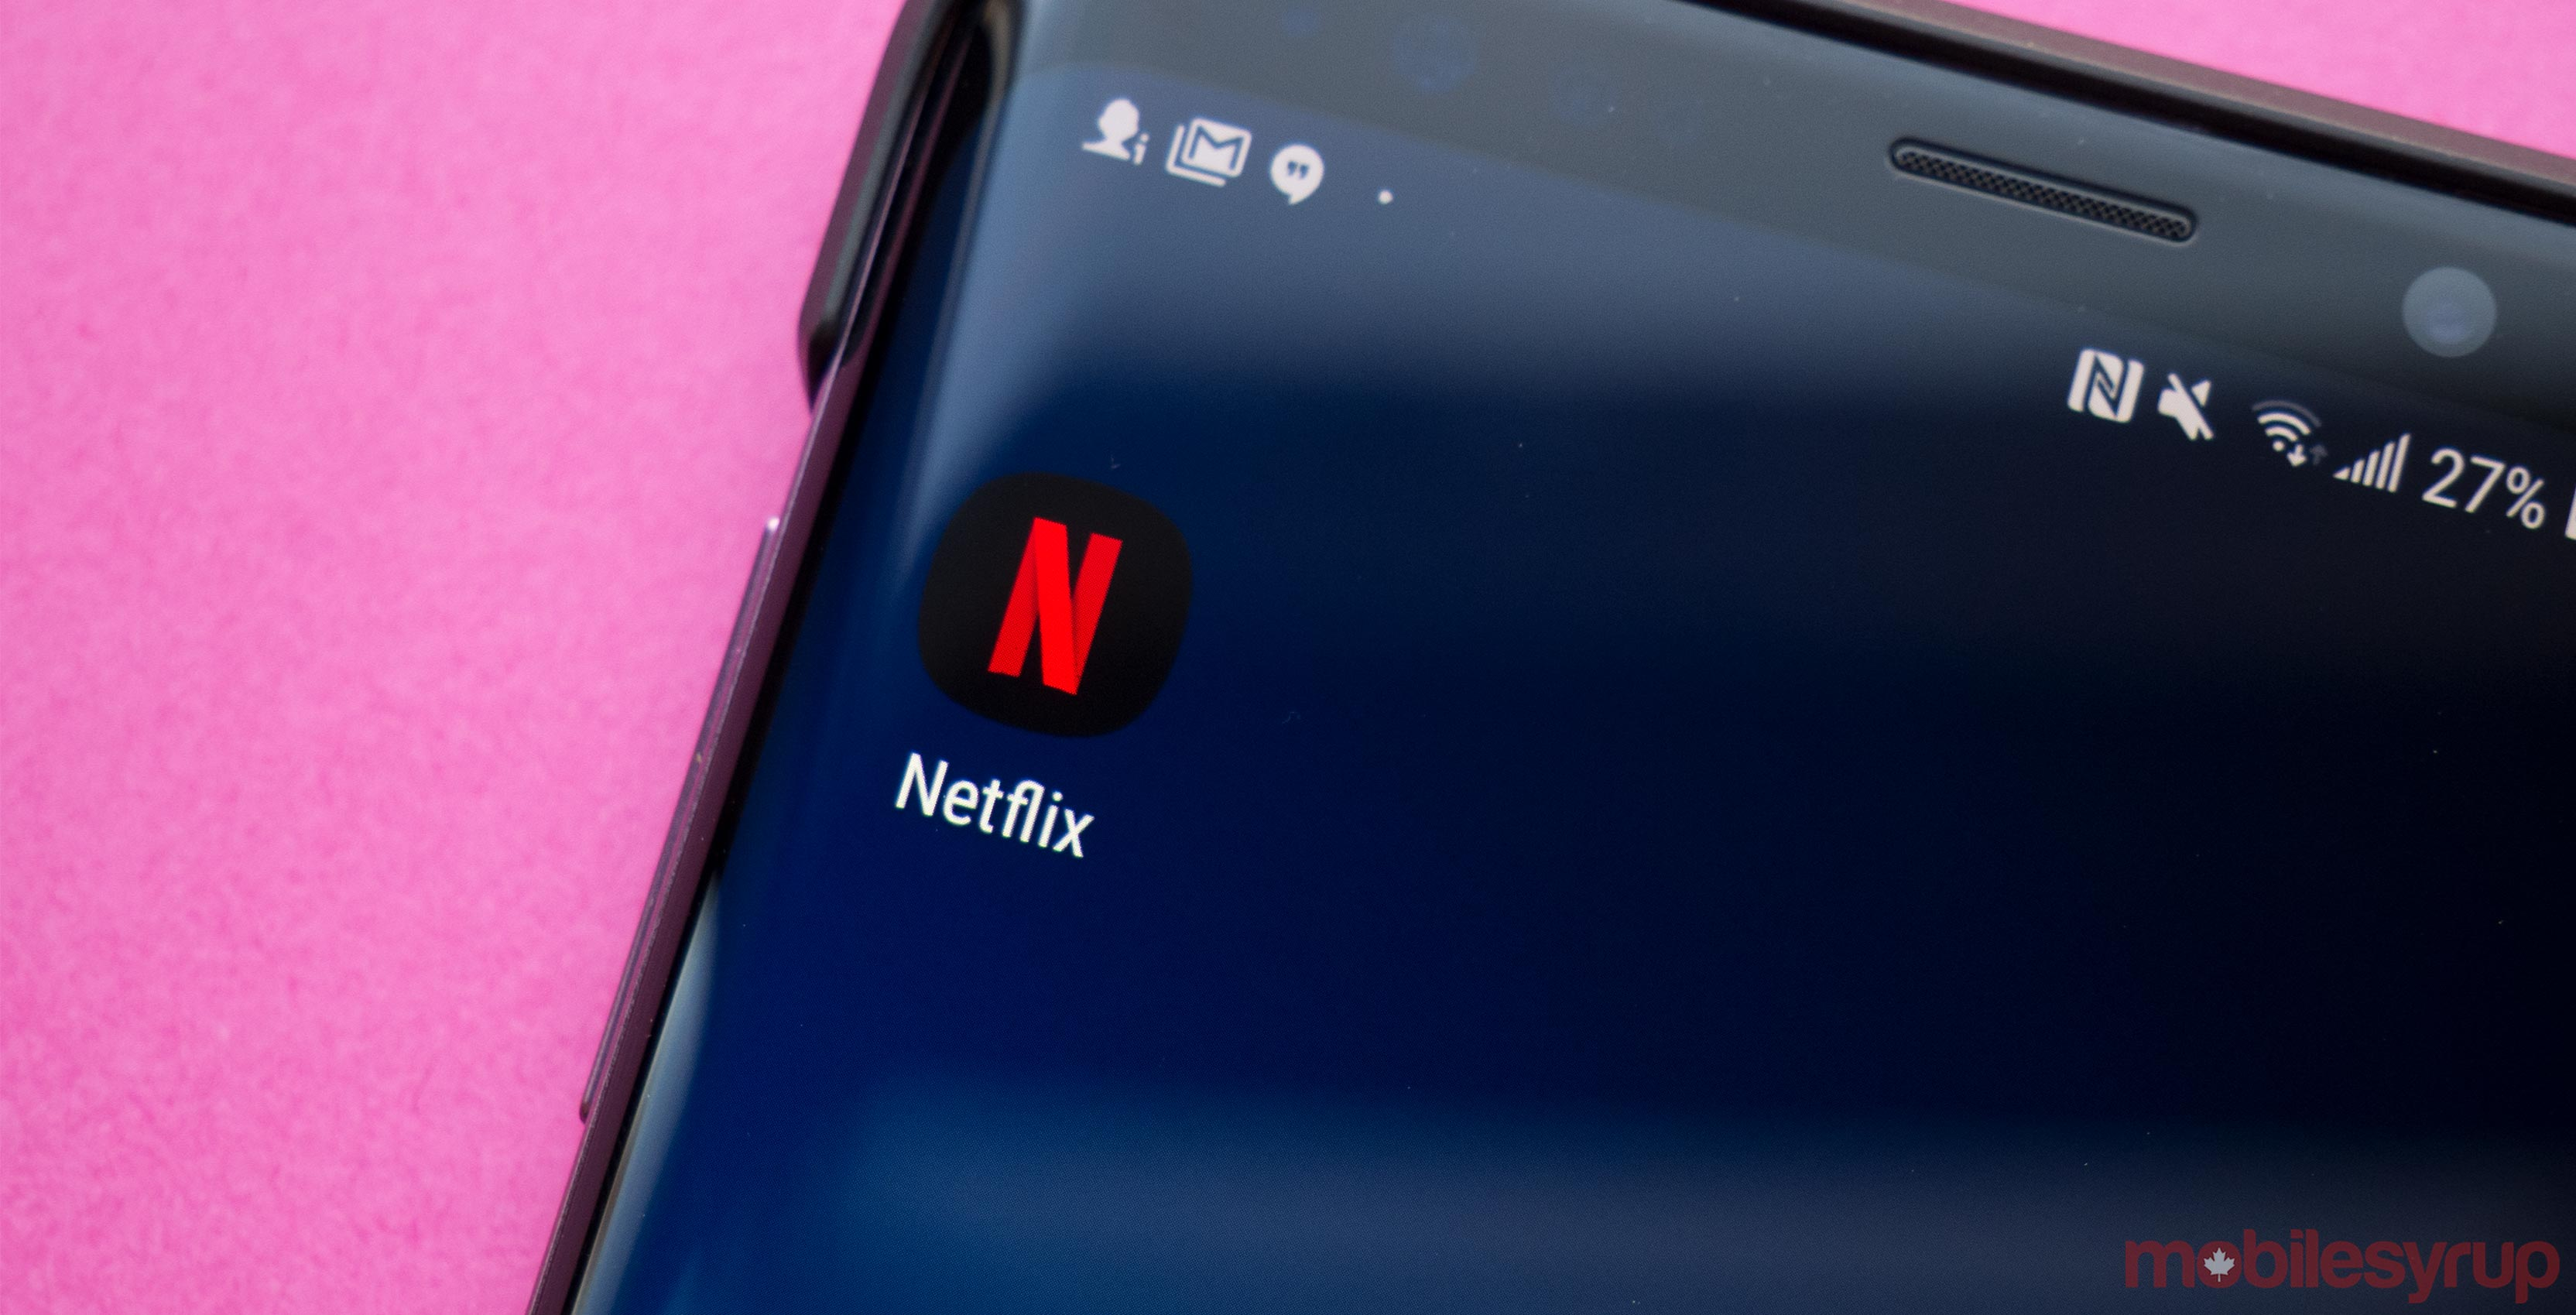 Report shows how Netflix measures viewership by 'starters,' 'watchers' and 'completers'